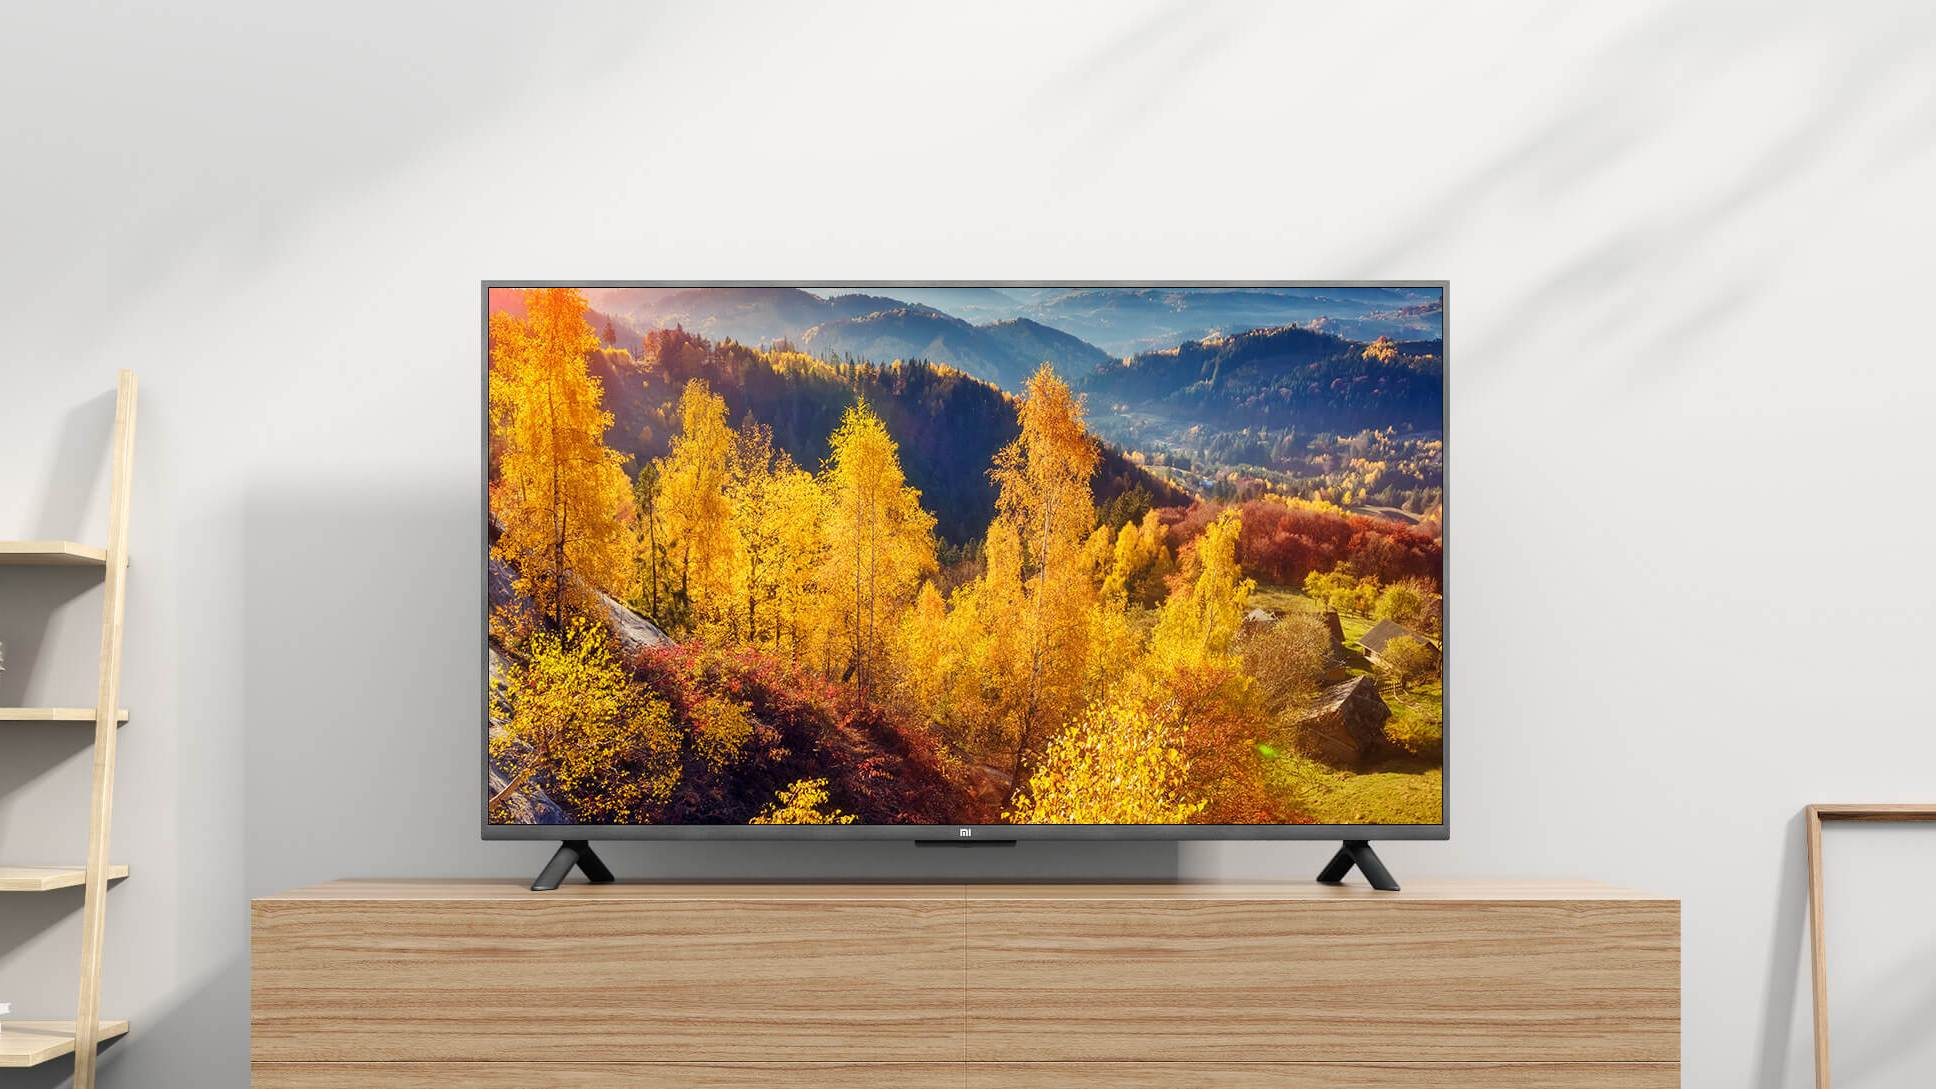 Xiaomi Mi TV 4S with 55-inch 4K HDR display could be the next one ...